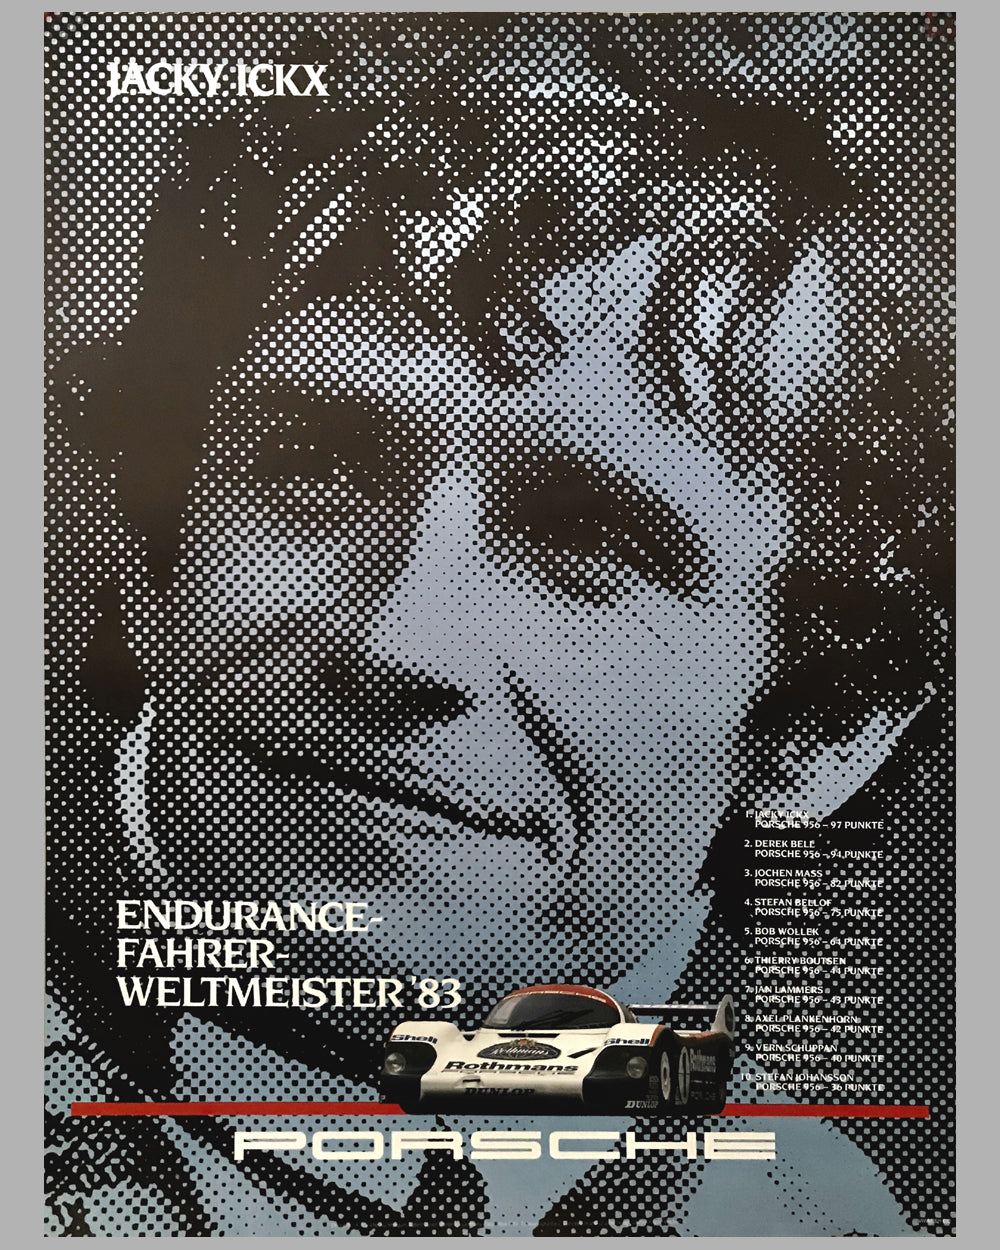 1983 World Endurance Champion Porsche Victory Poster